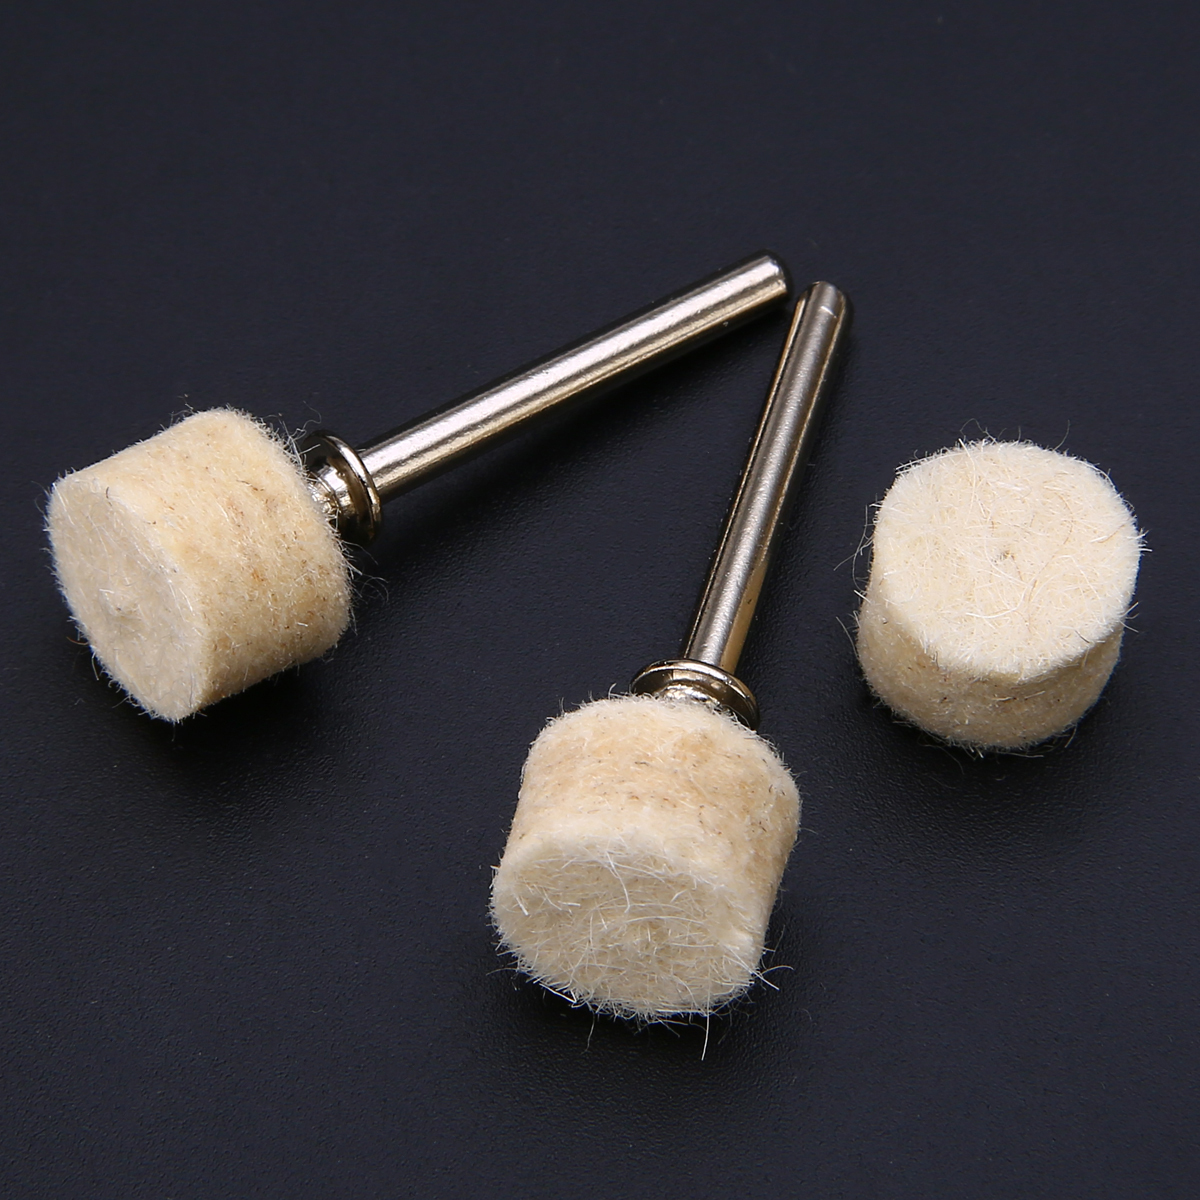 Replacement 100pcs Wool Felt Polishing Wheels 13mm Grindering Buffing Pads Mini Wool Wheel Pad Abrasive Tools With 2 Shanks